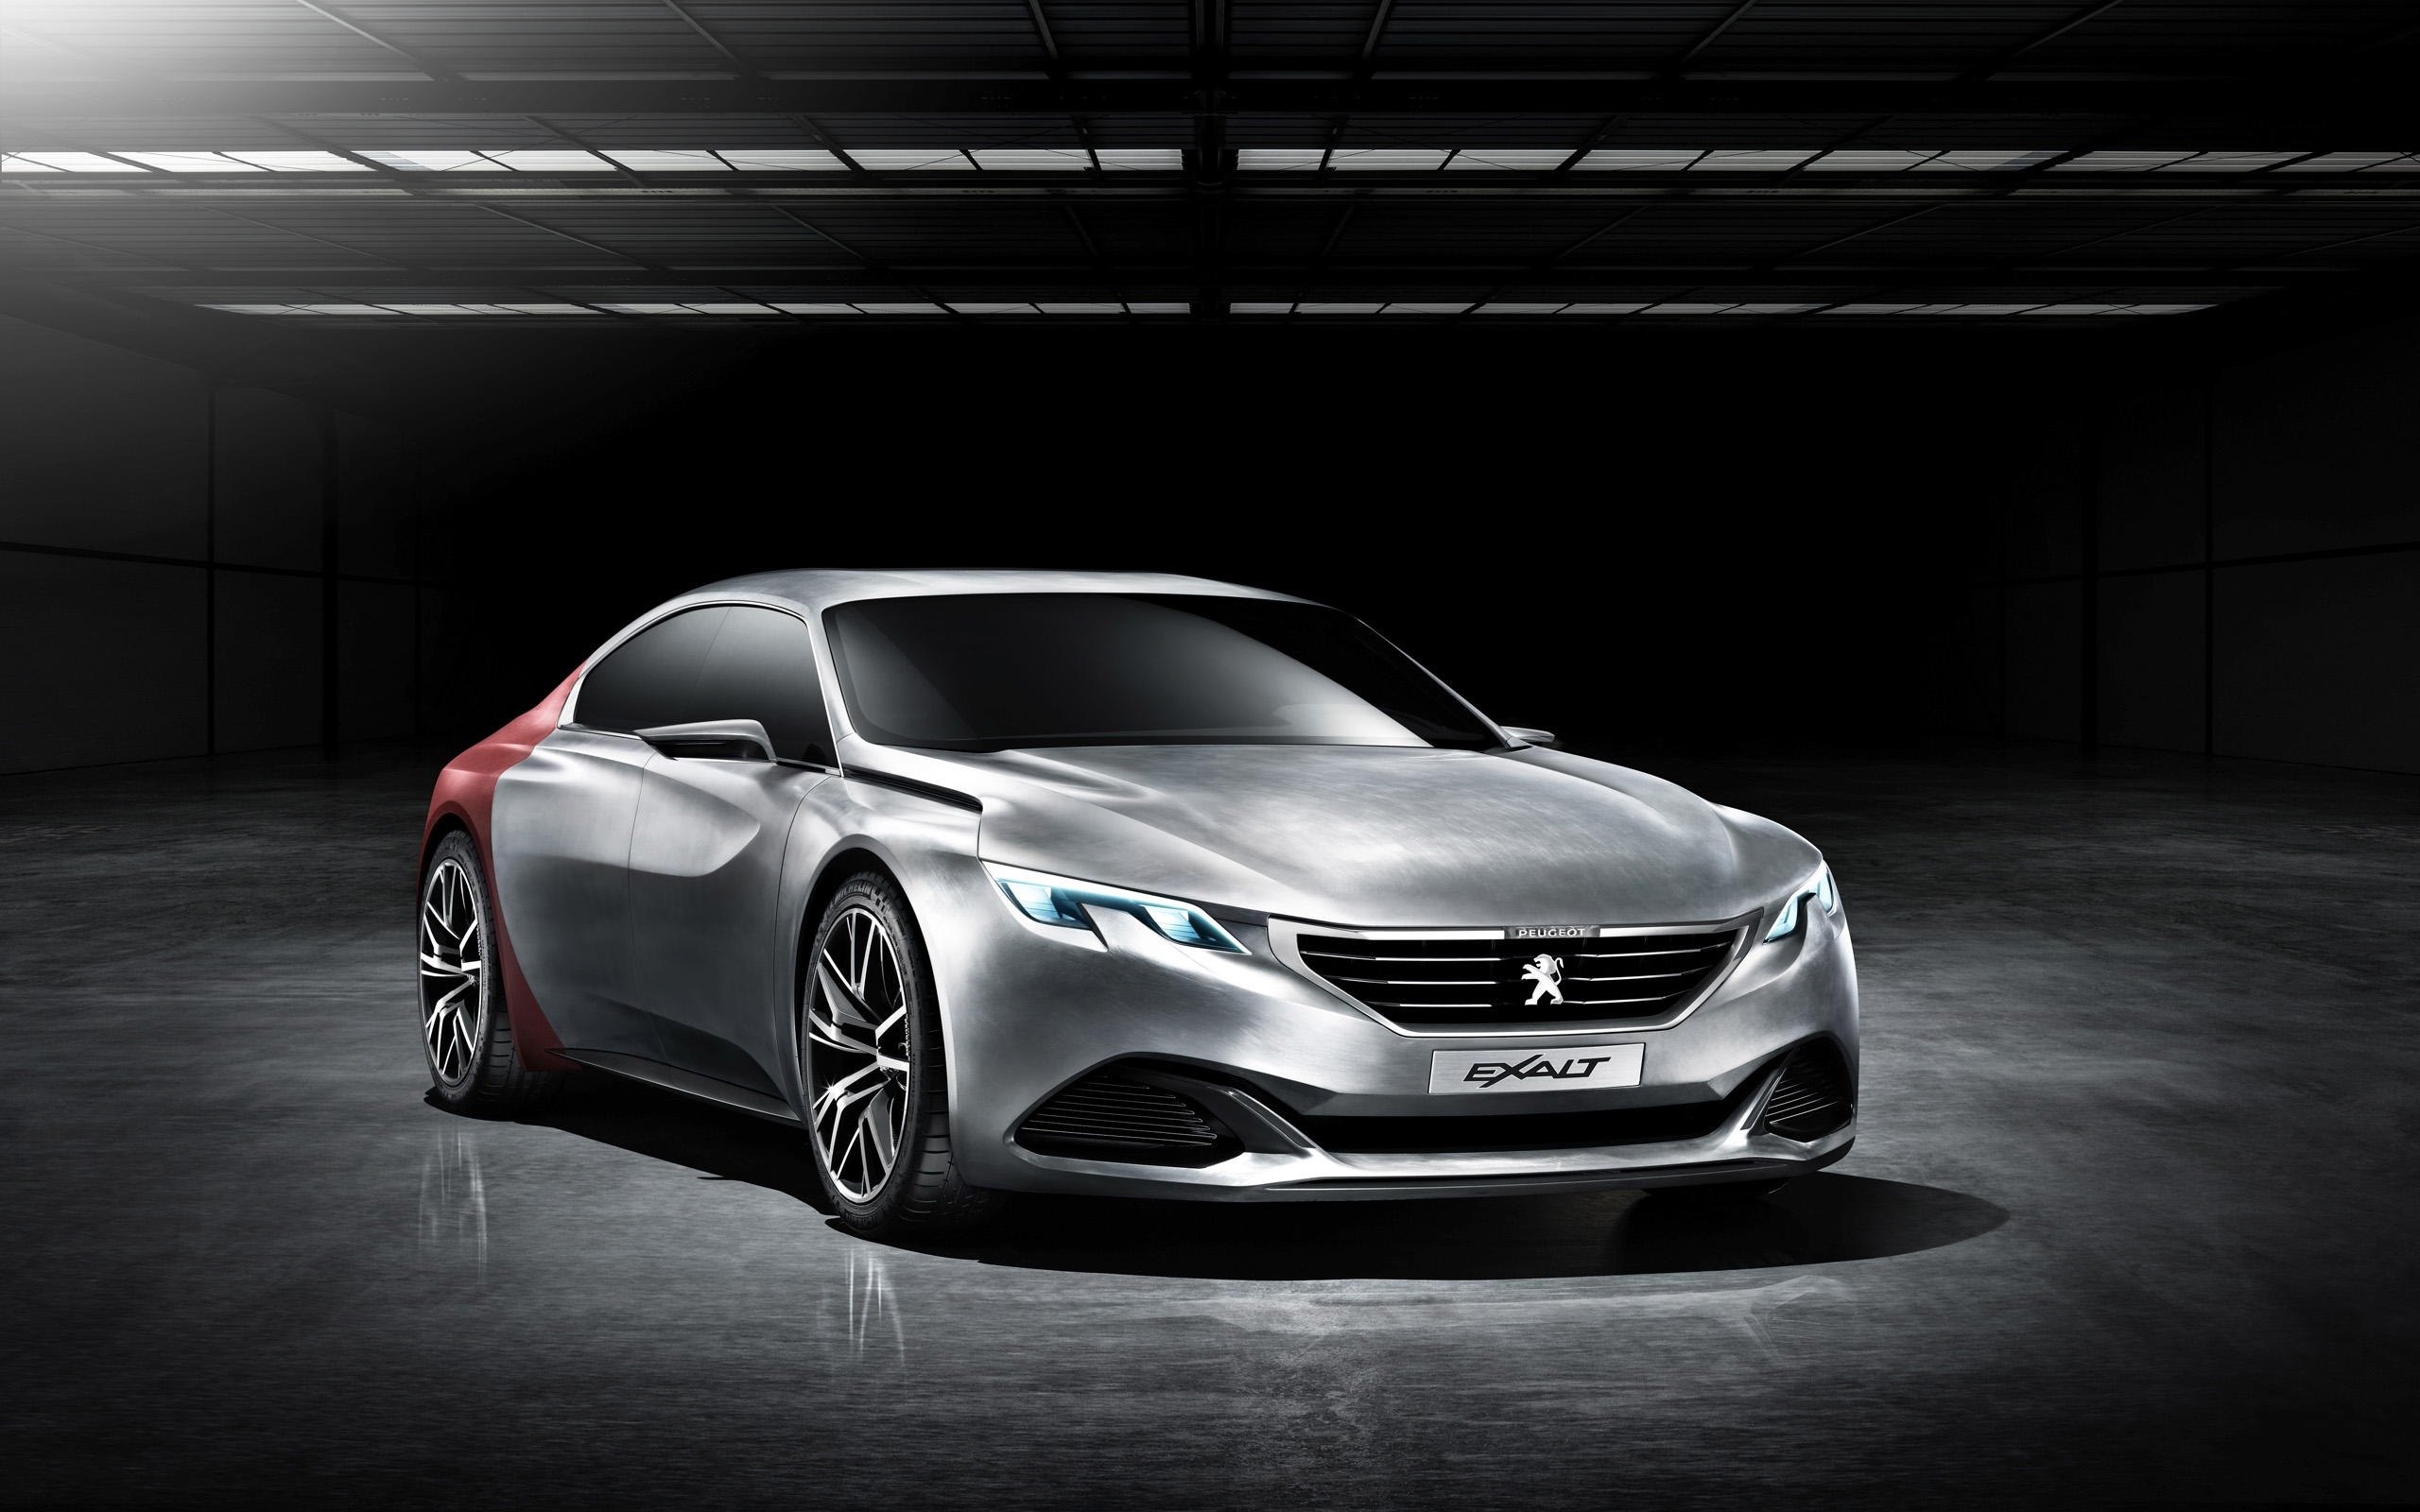 2014 Peugeot Exalt Concept Wallpaper | HD Car Wallpapers | ID #4397